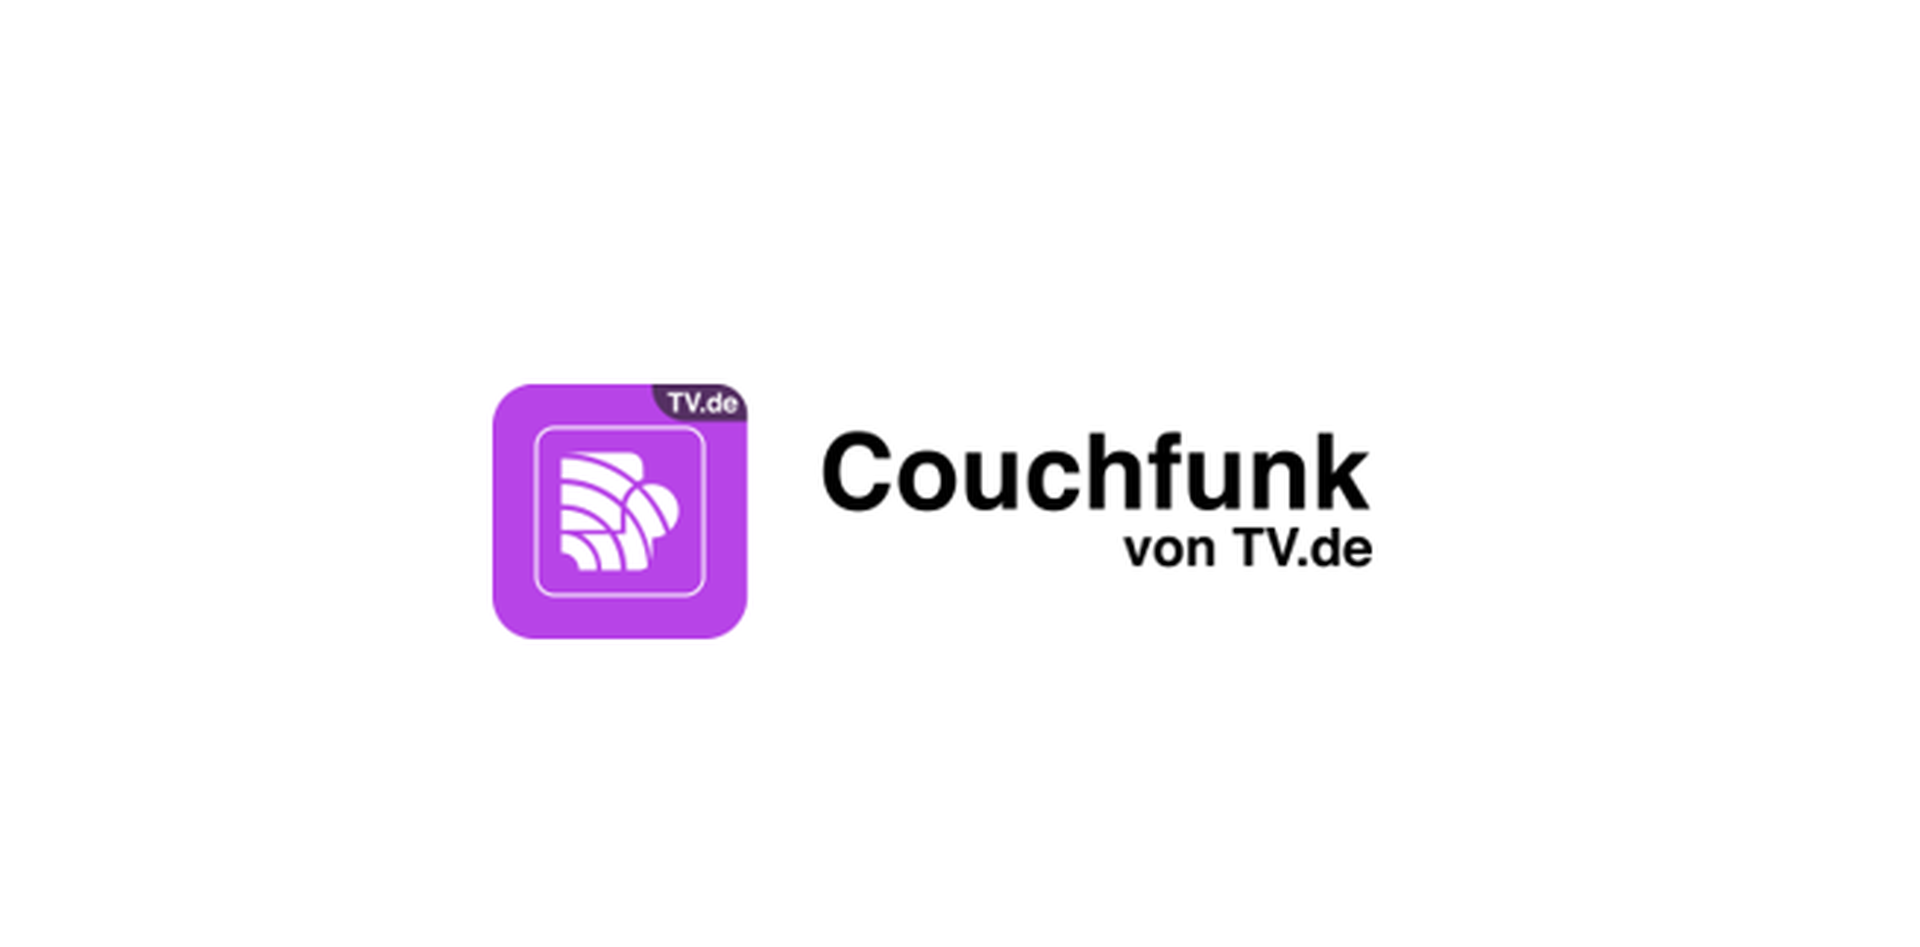 couchfunk logo r.png